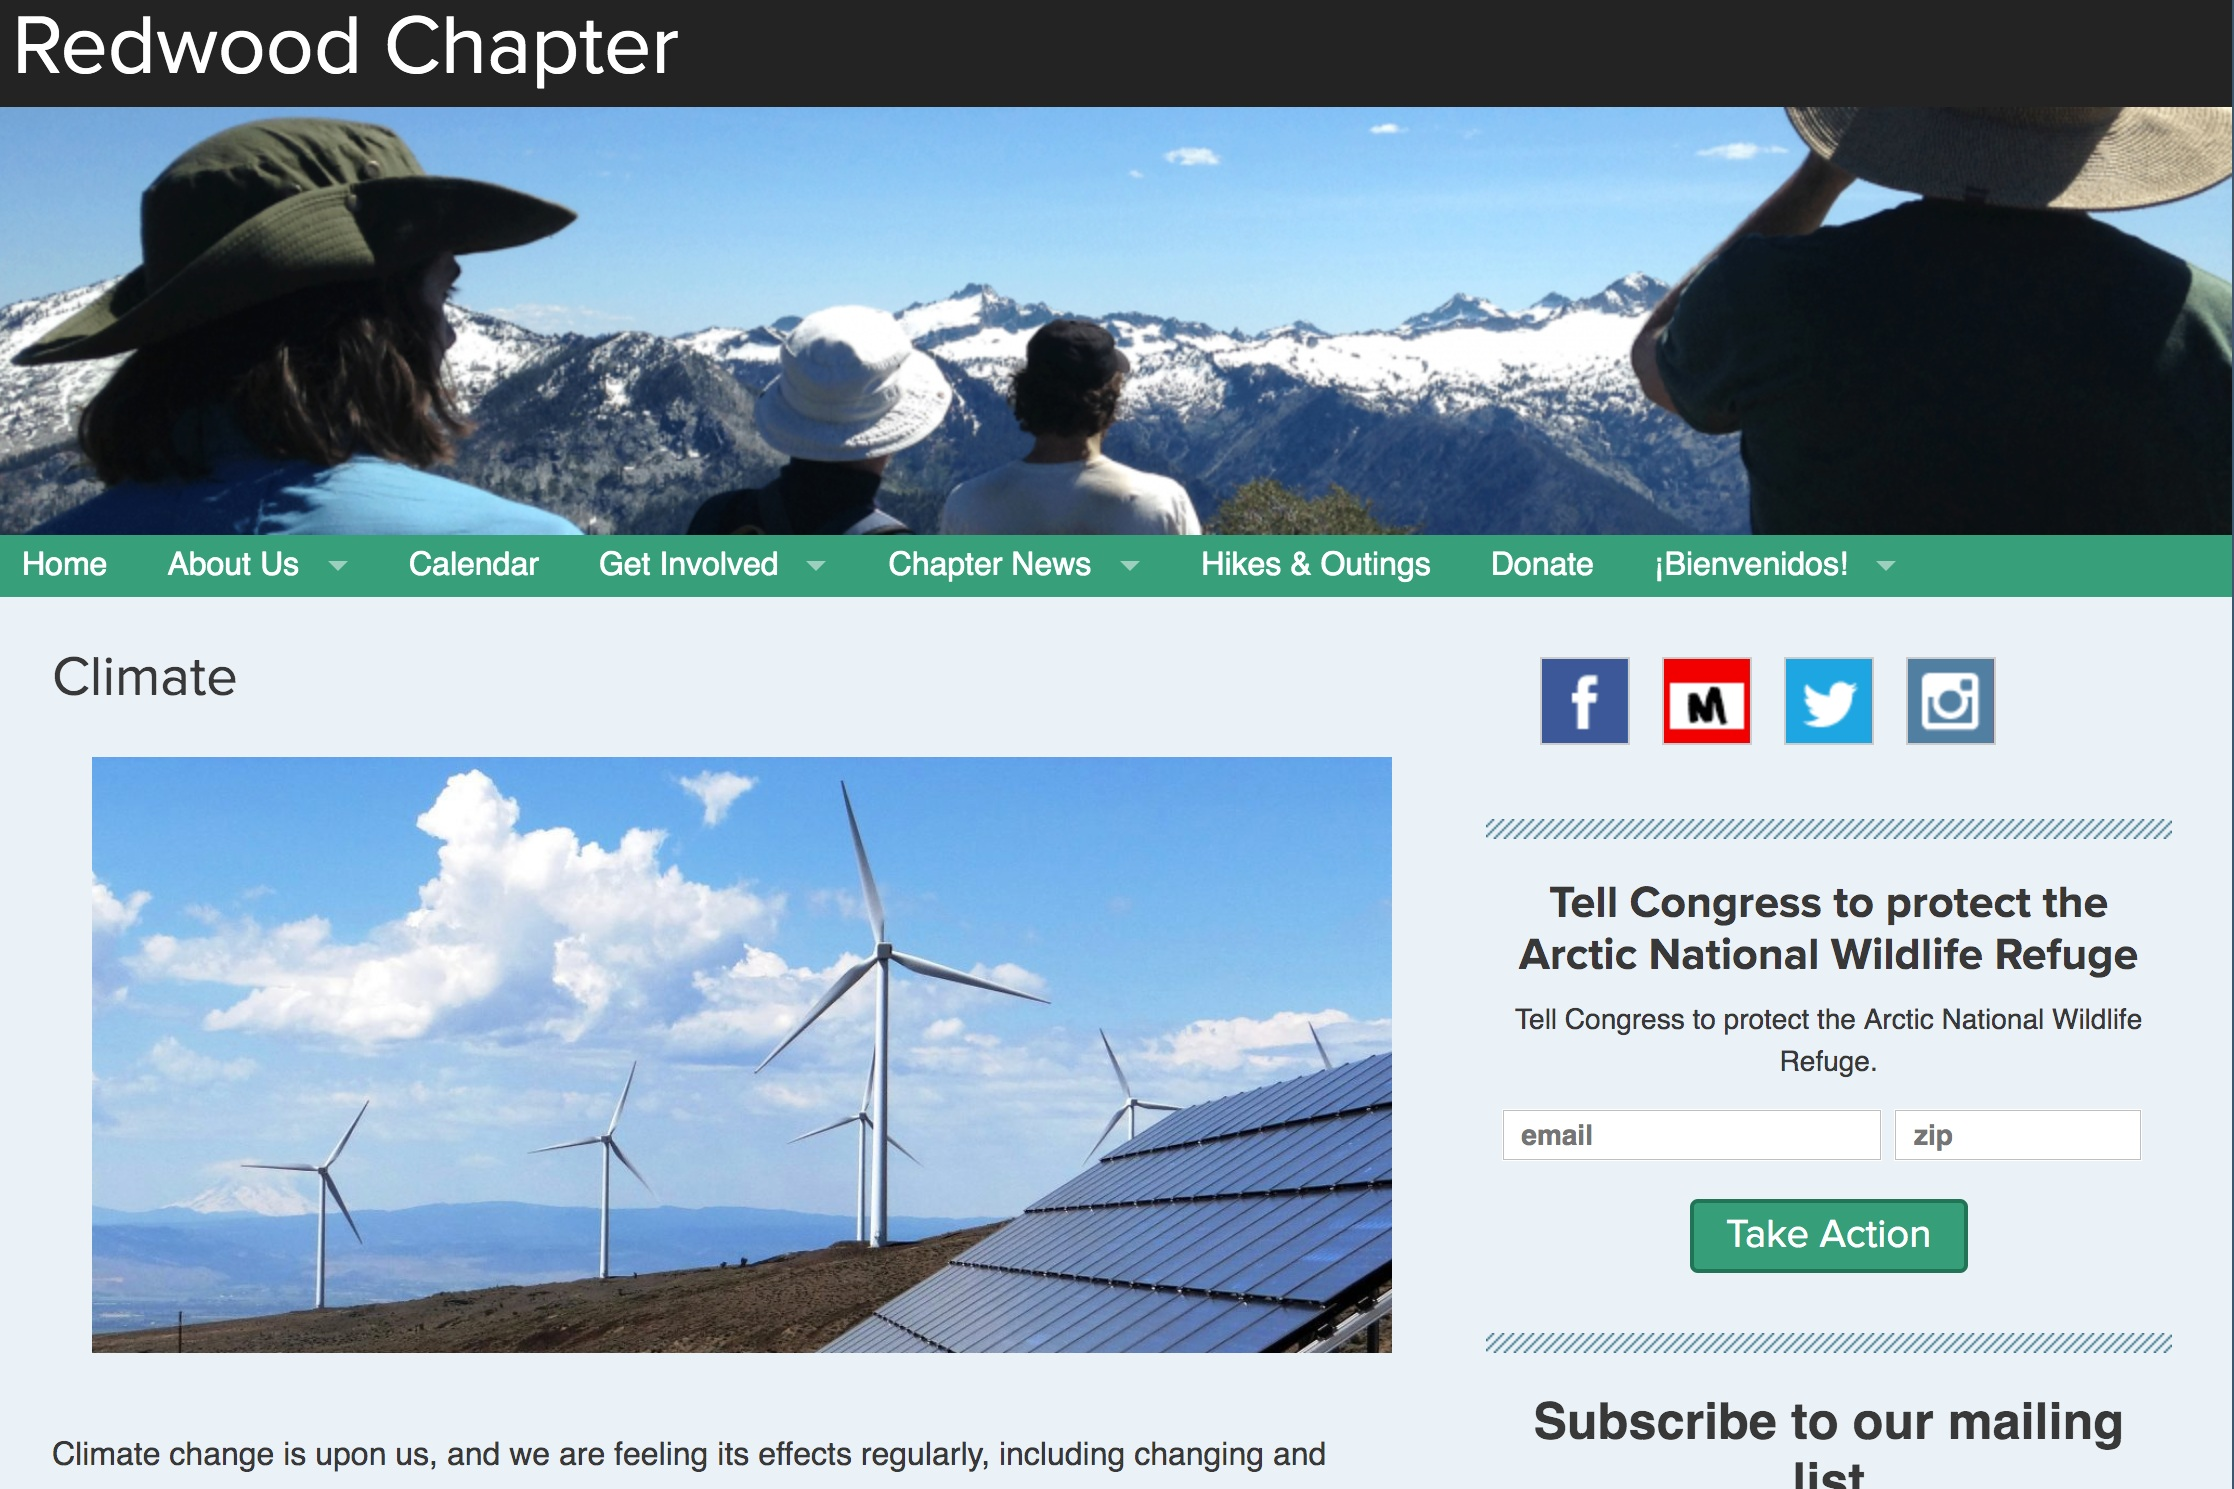 - Sierra Club Redwood Chapter's Climate Webpage